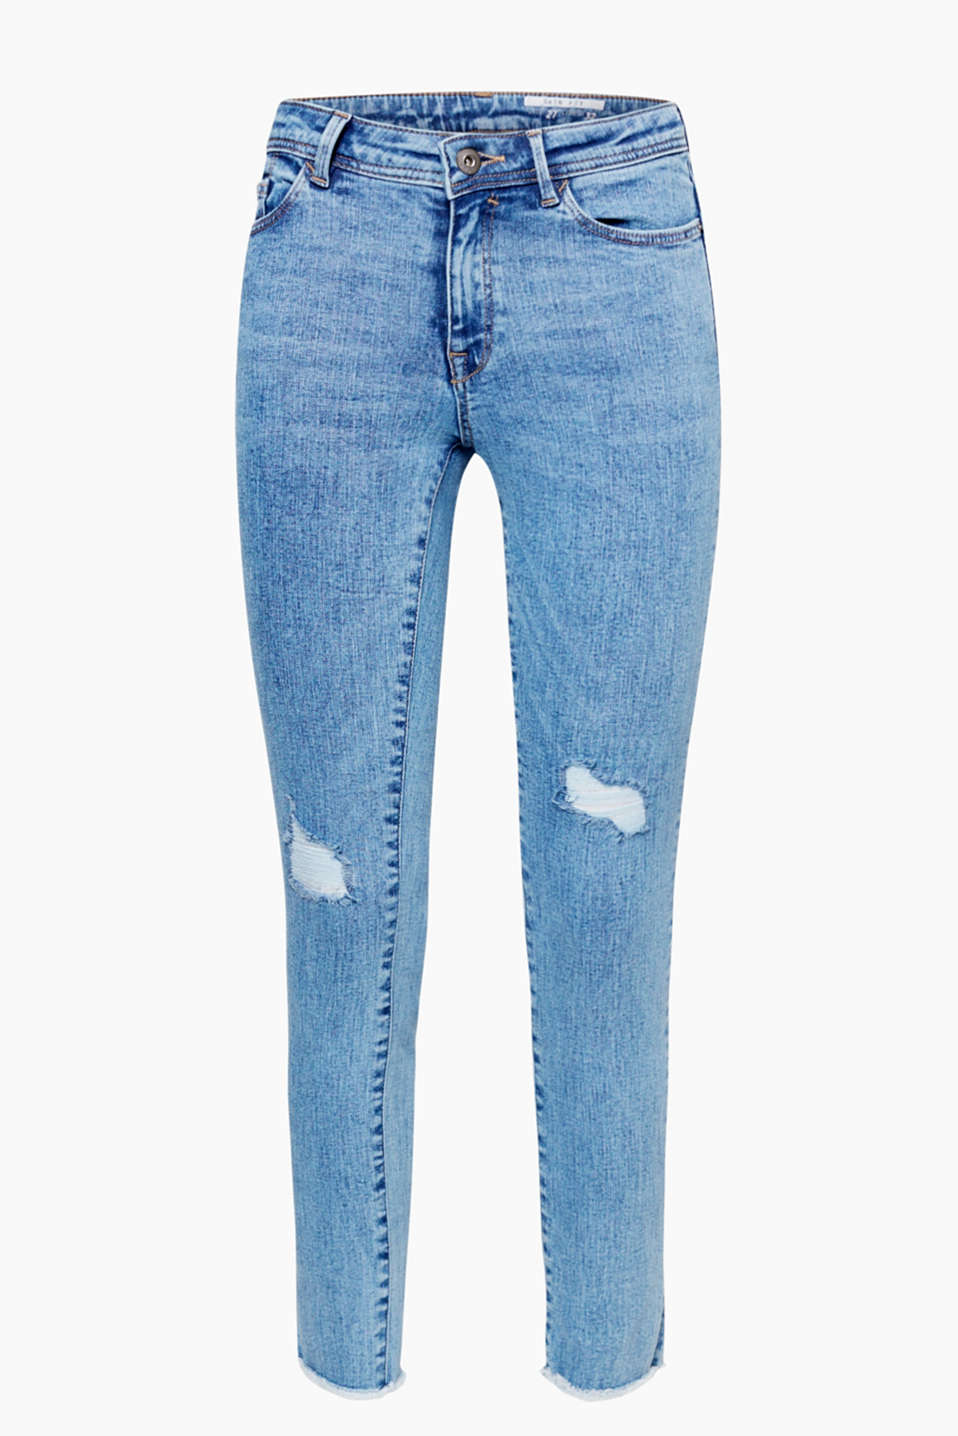 Retro rock chick vibe guaranteed: cropped, acid wash jeans with a distressed, vintage finish